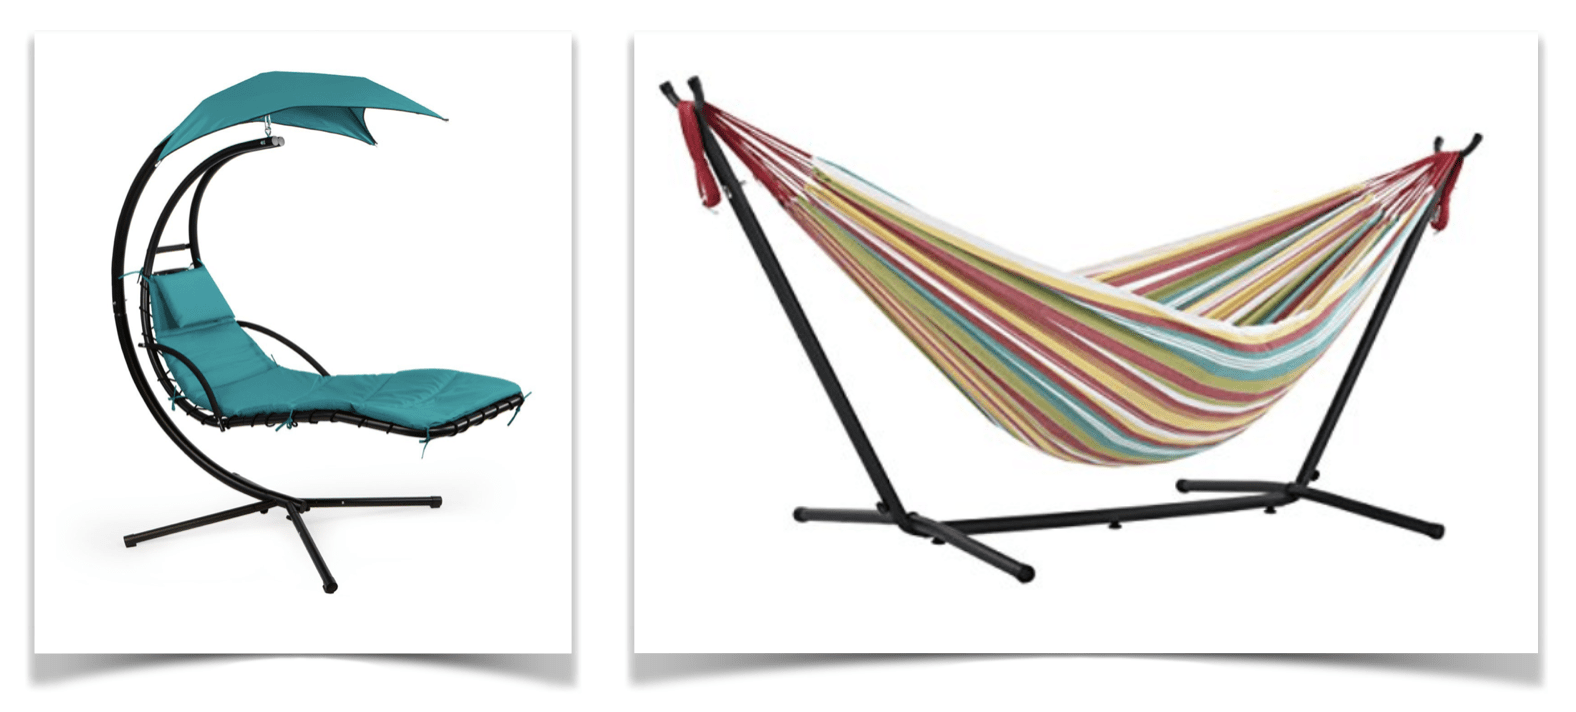 April Pools Day - Hammocks and Loungers